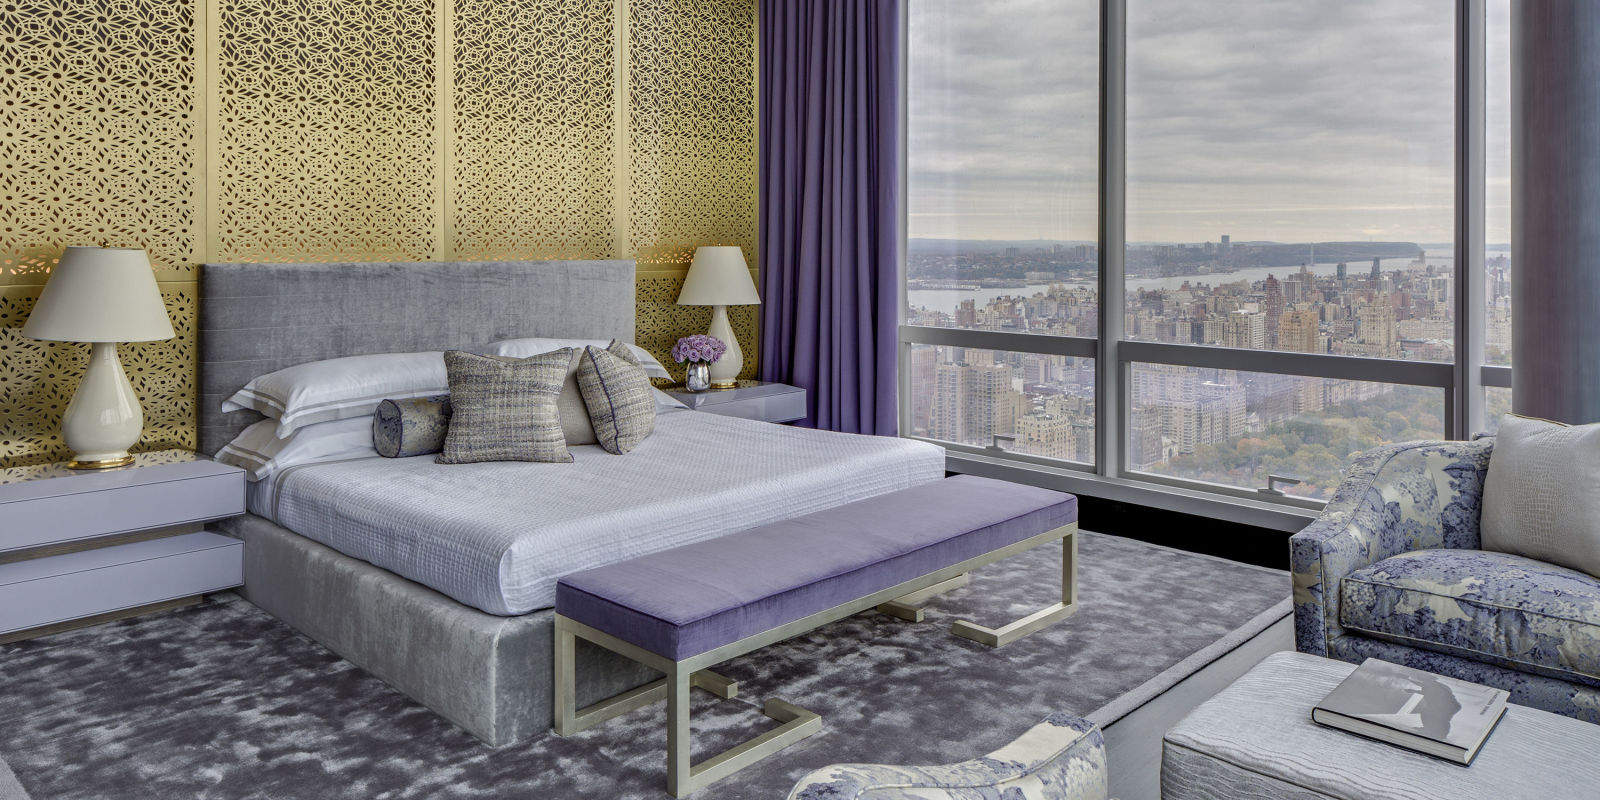 Most expensive apartment in new york city sold for 100 for Million dollar apartments nyc